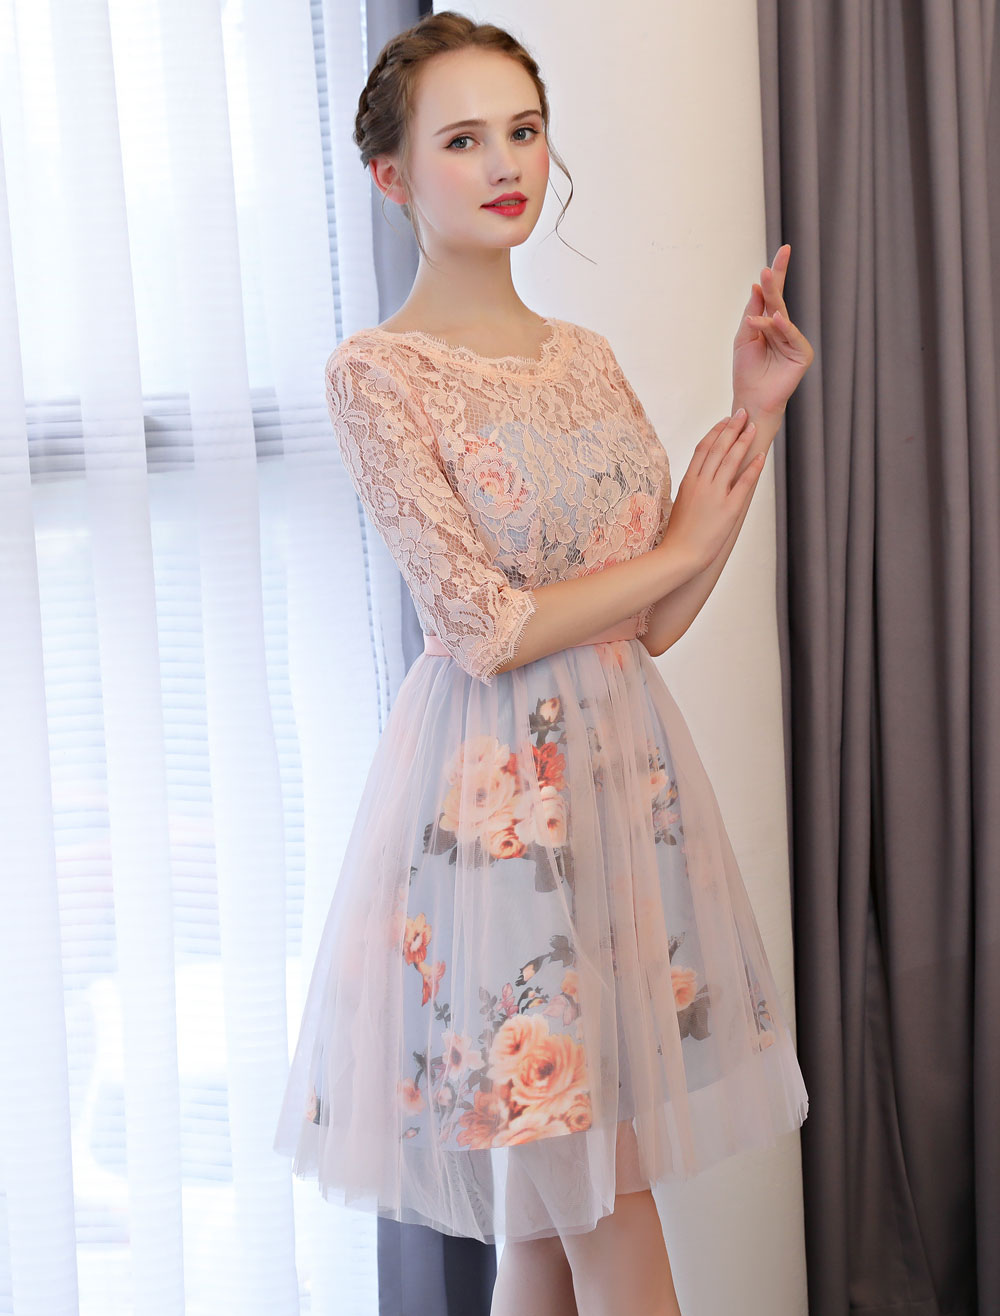 a043ce77726 Short Prom Dresses Soft Pink Floral Print Lace Half Sleeve Cute ...